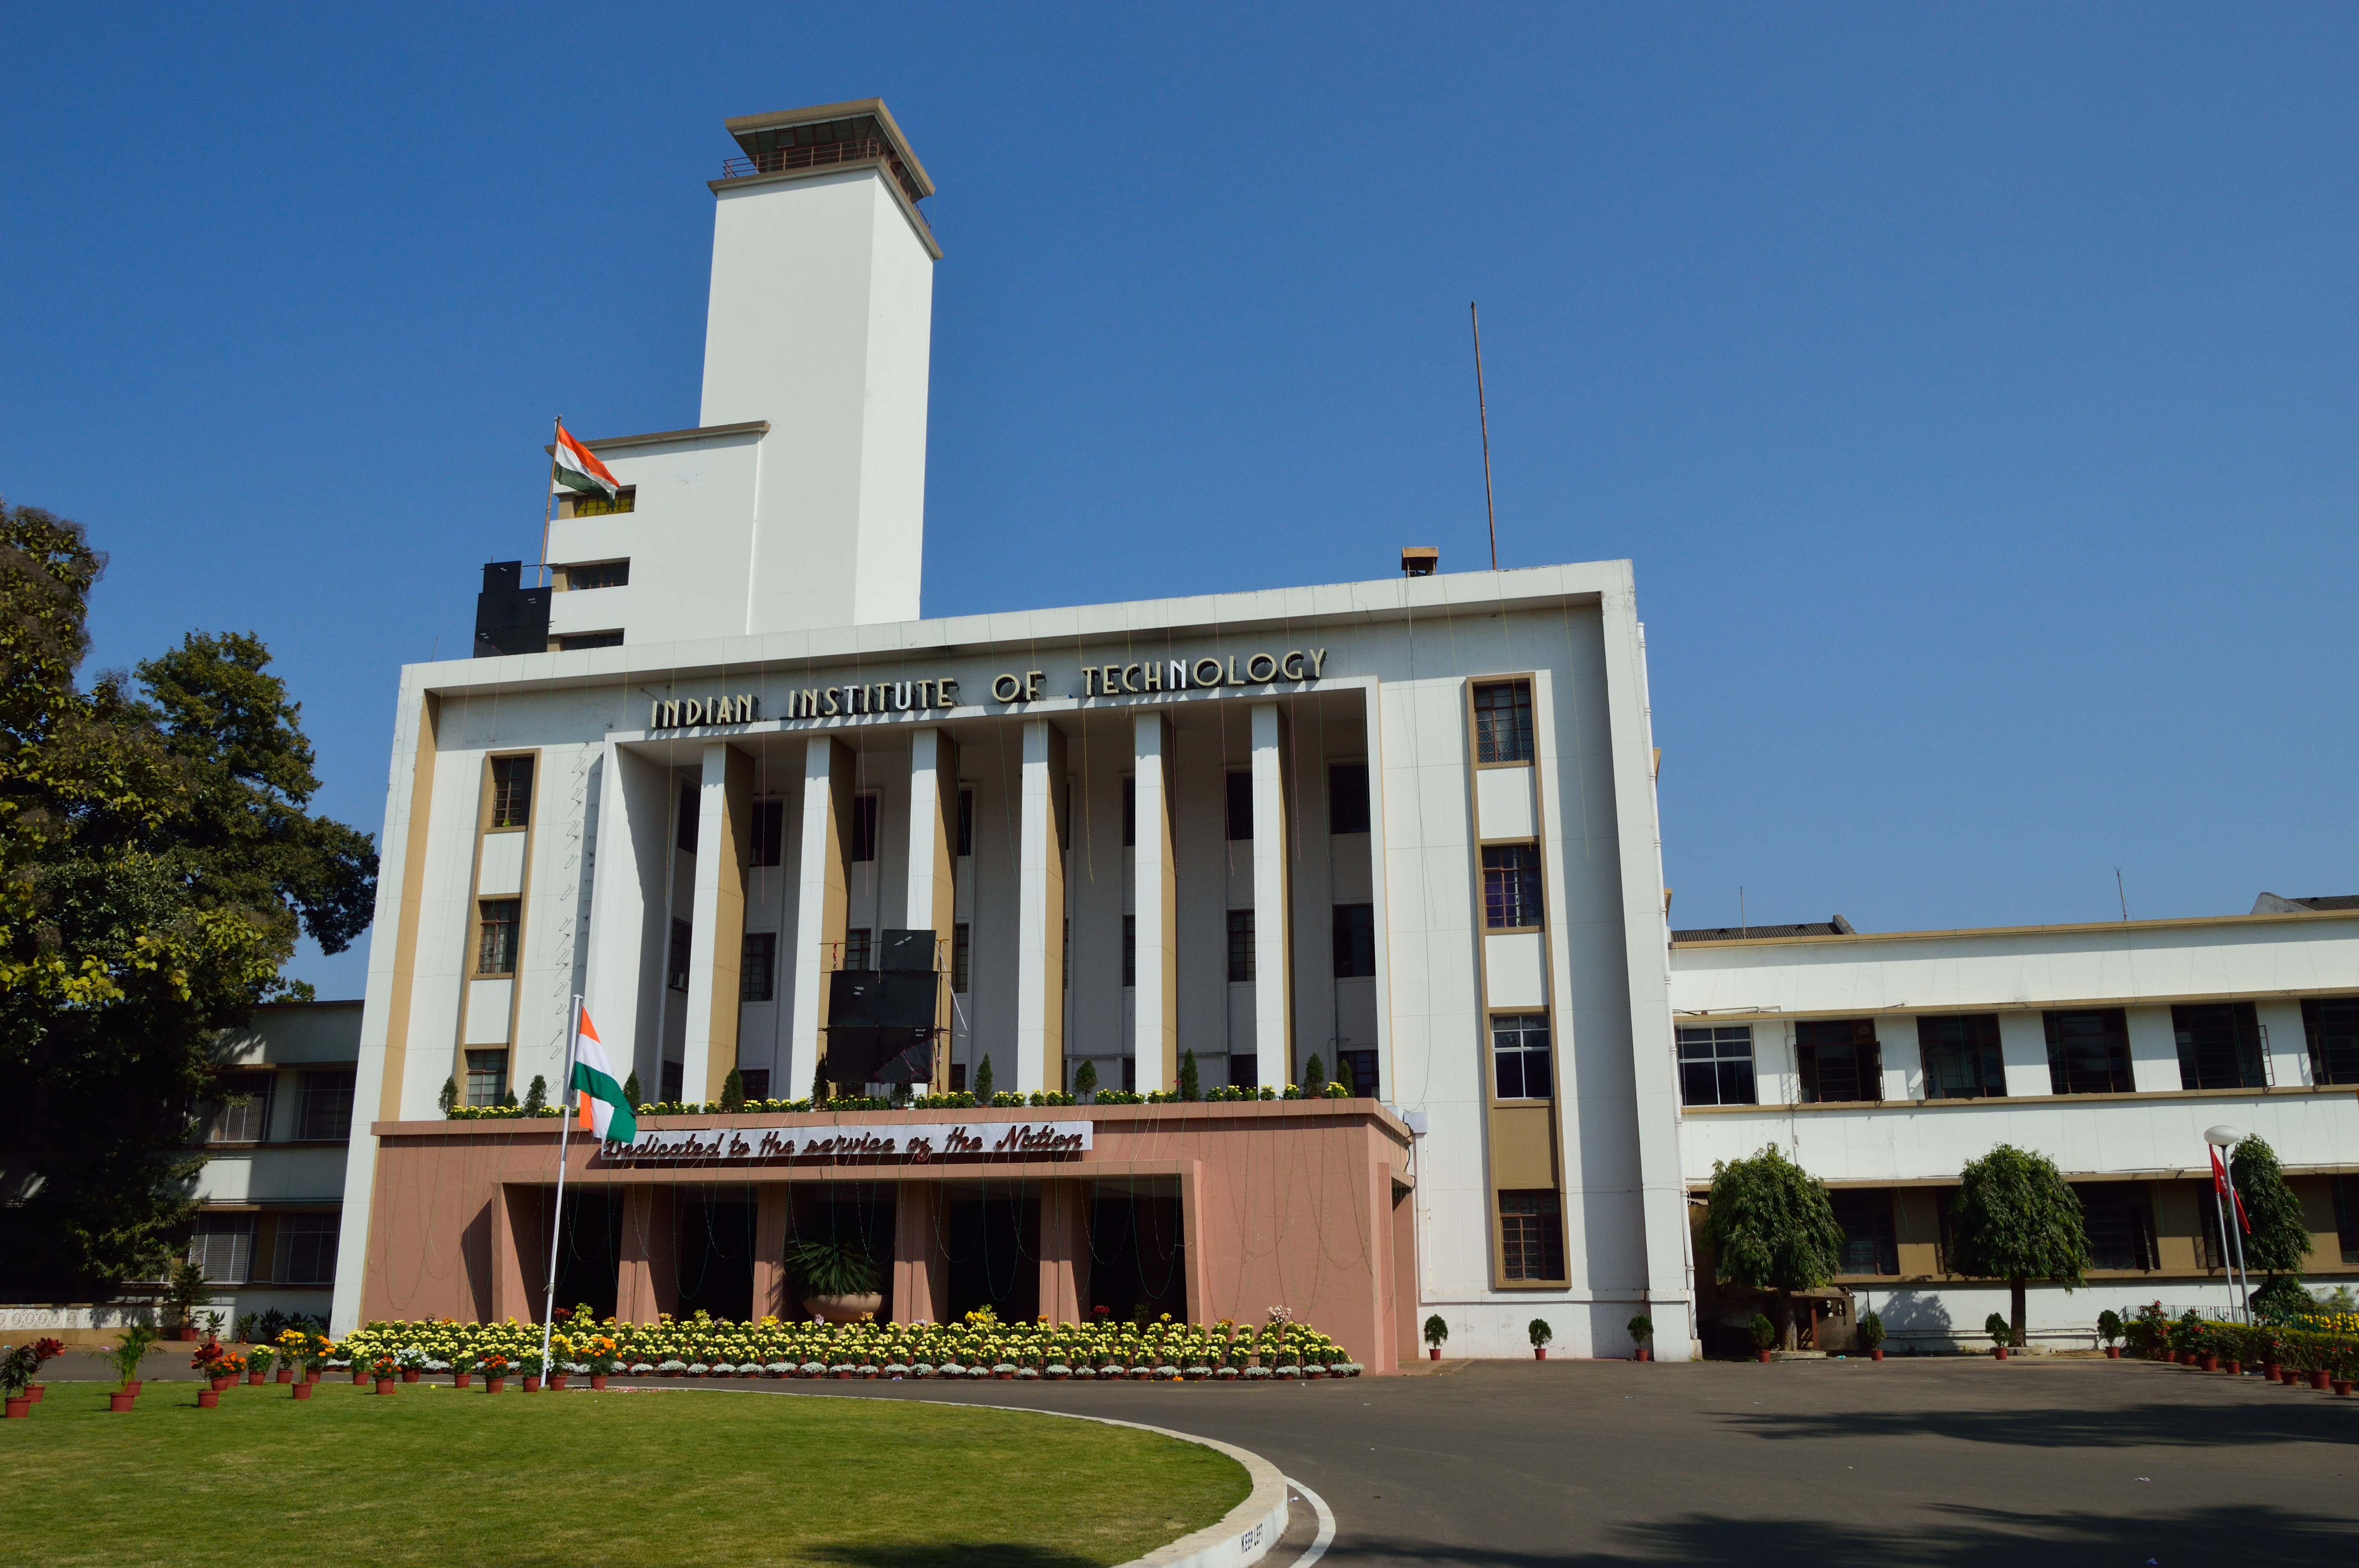 Indian institute of technology kharagpur - File Main Building Indian Institute Of Technology Kharagpur West Midnapore 2013